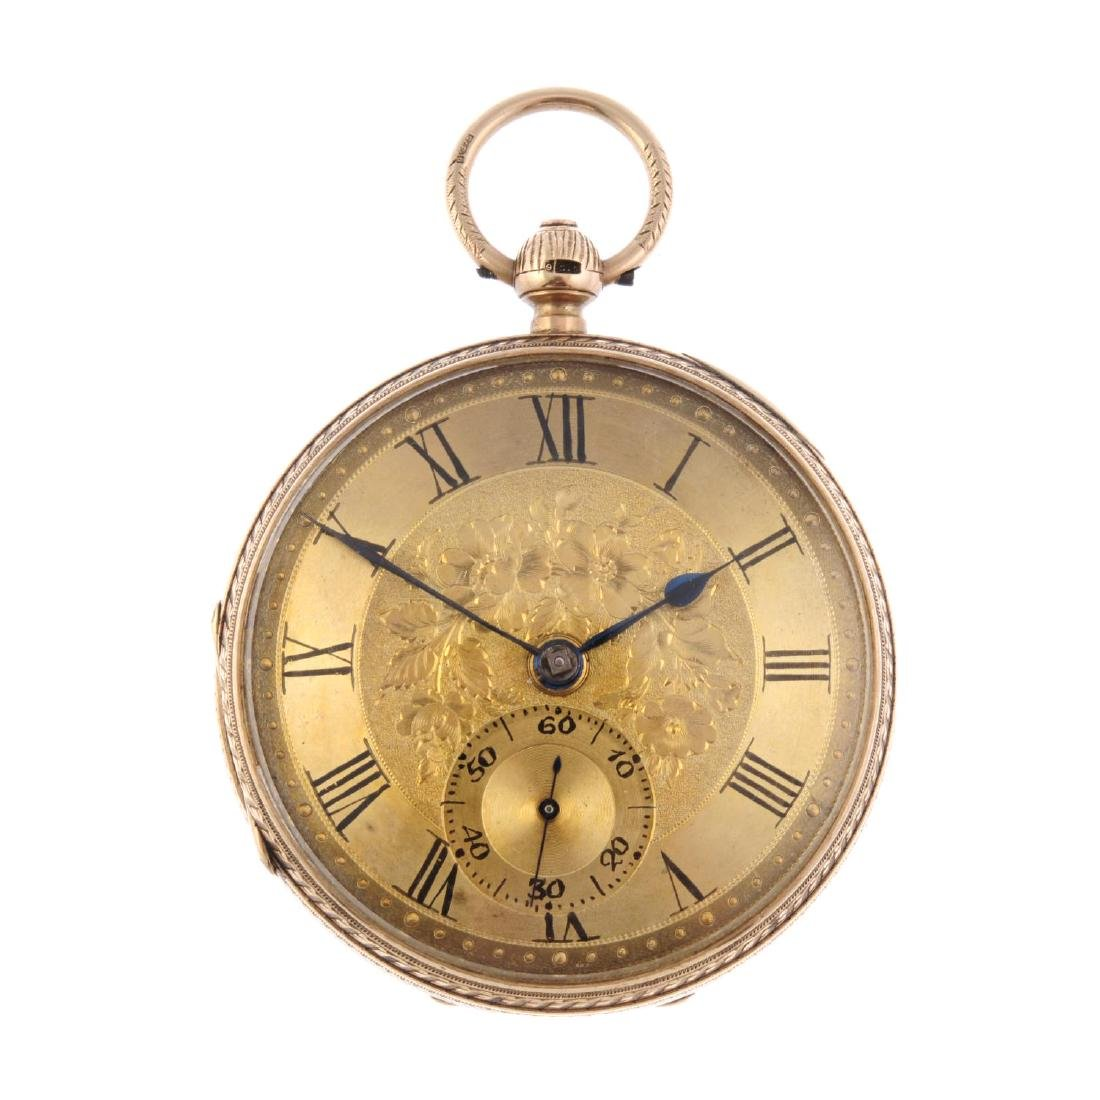 An open face pocket watch by John Forest. 9ct yellow